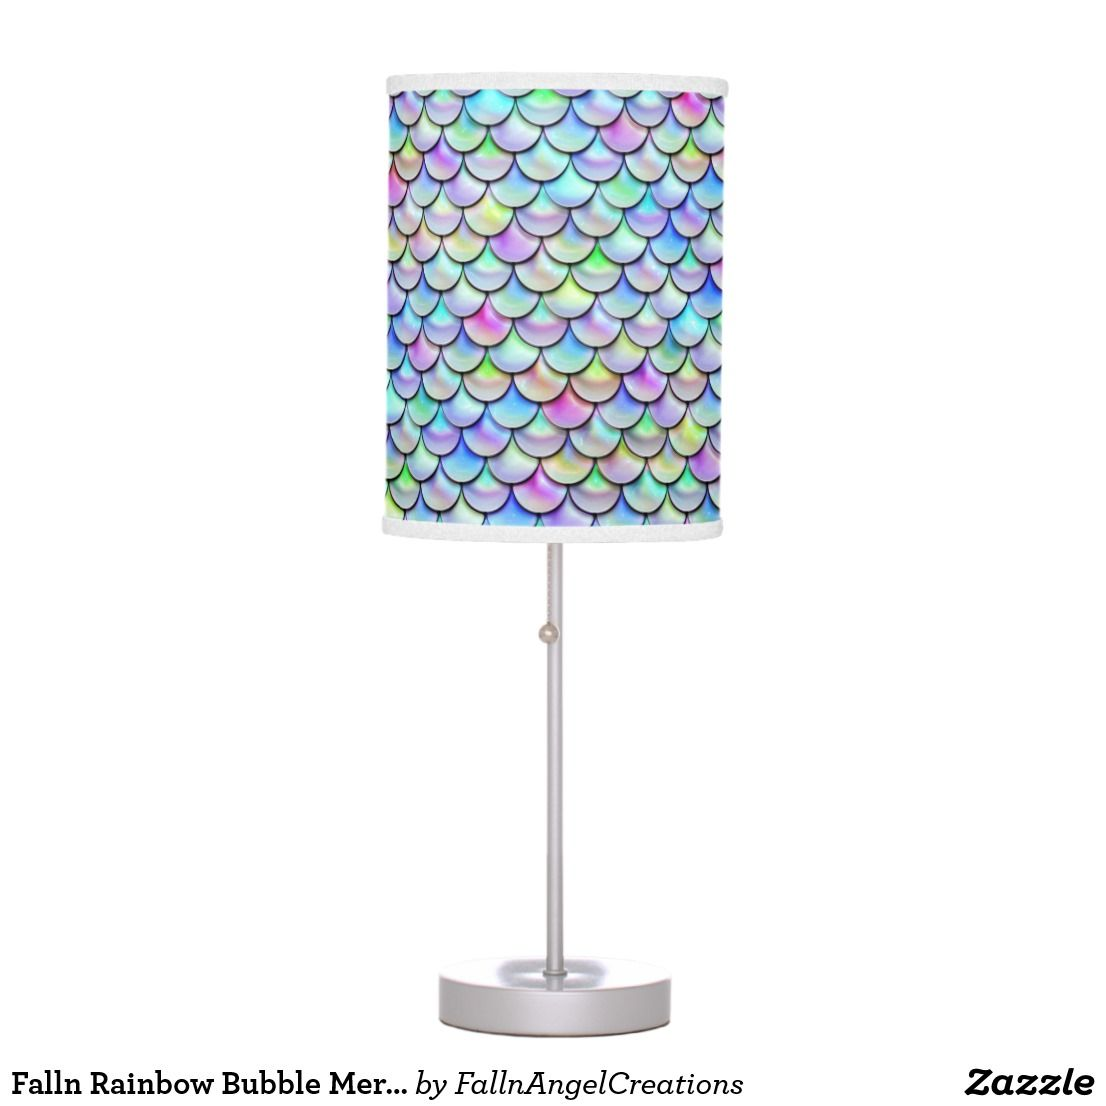 Falln Rainbow Bubble Mermaid Scales Table Lamp | Zazzle.com